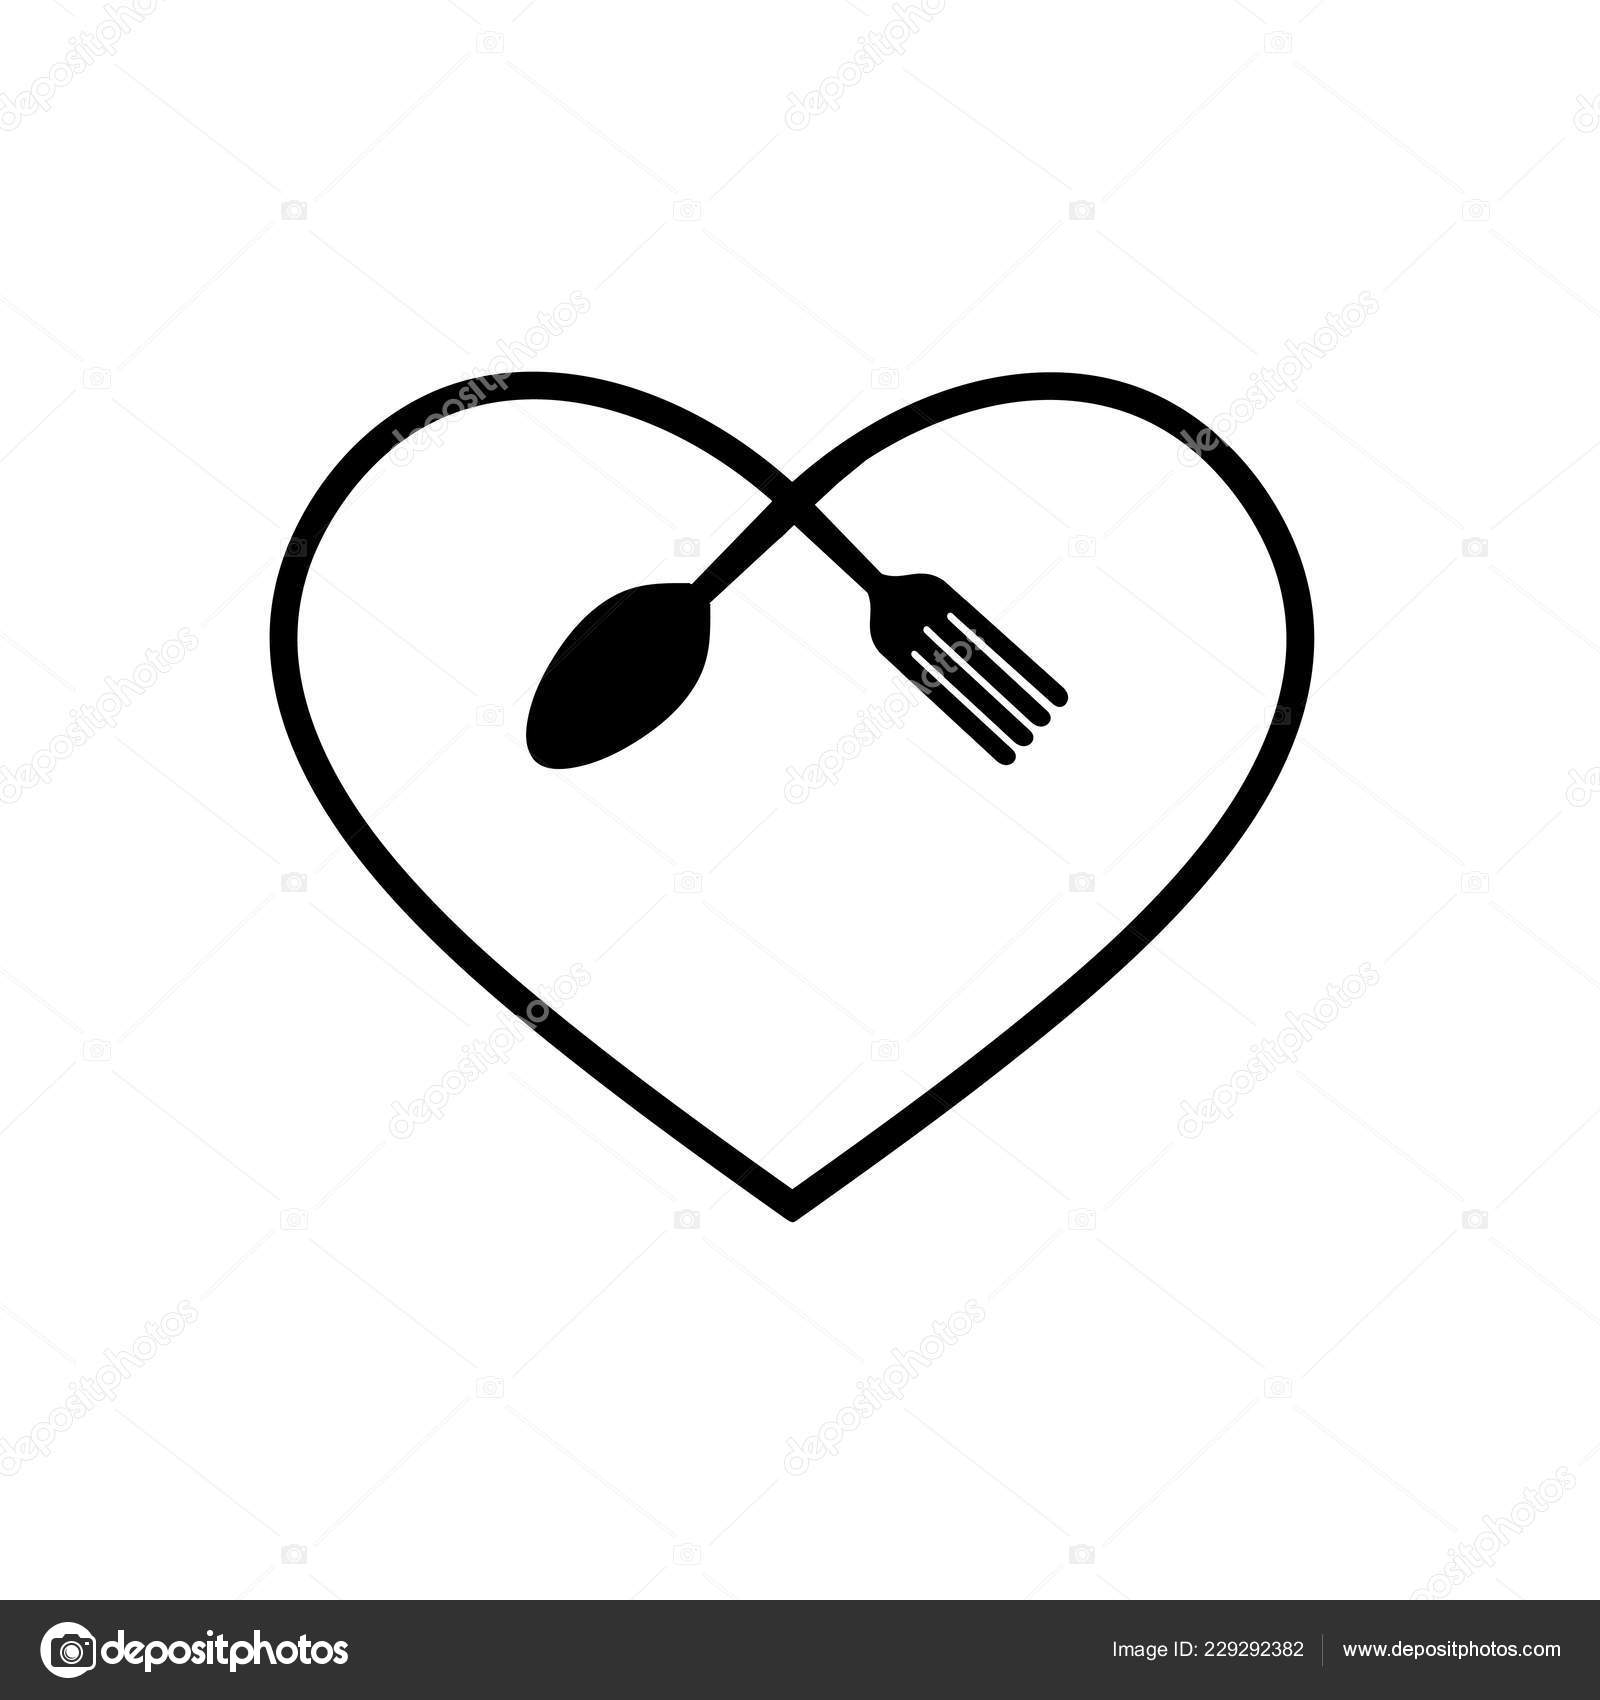 Love Food Modern Style Logo Design A Spoon Knife And A Fork In The Shape Of A Heart Stock Vector C Dalinas 229292382